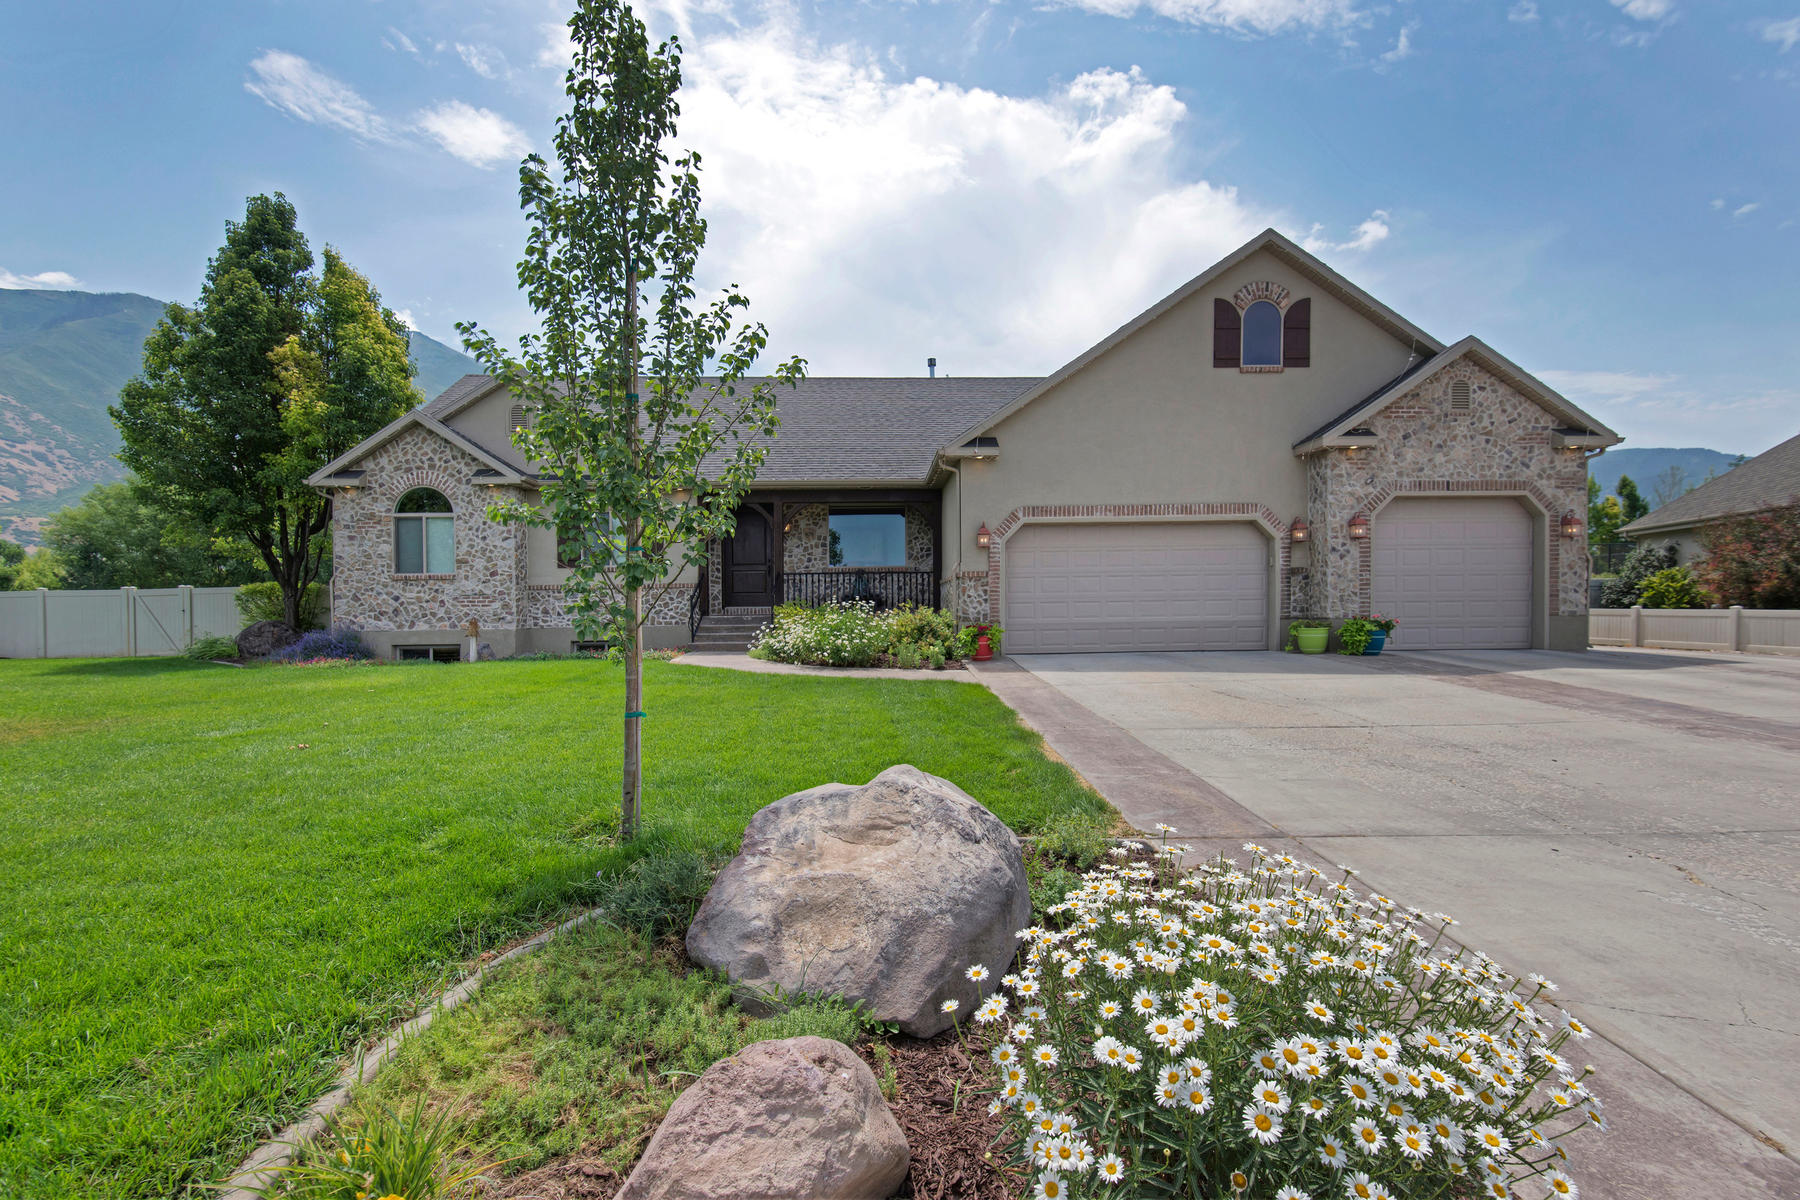 Single Family Home for Sale at Beautiful Home With a Large Detached Garage in Mapleton 679 W Monta Vista Dr Mapleton, Utah, 84664 United States